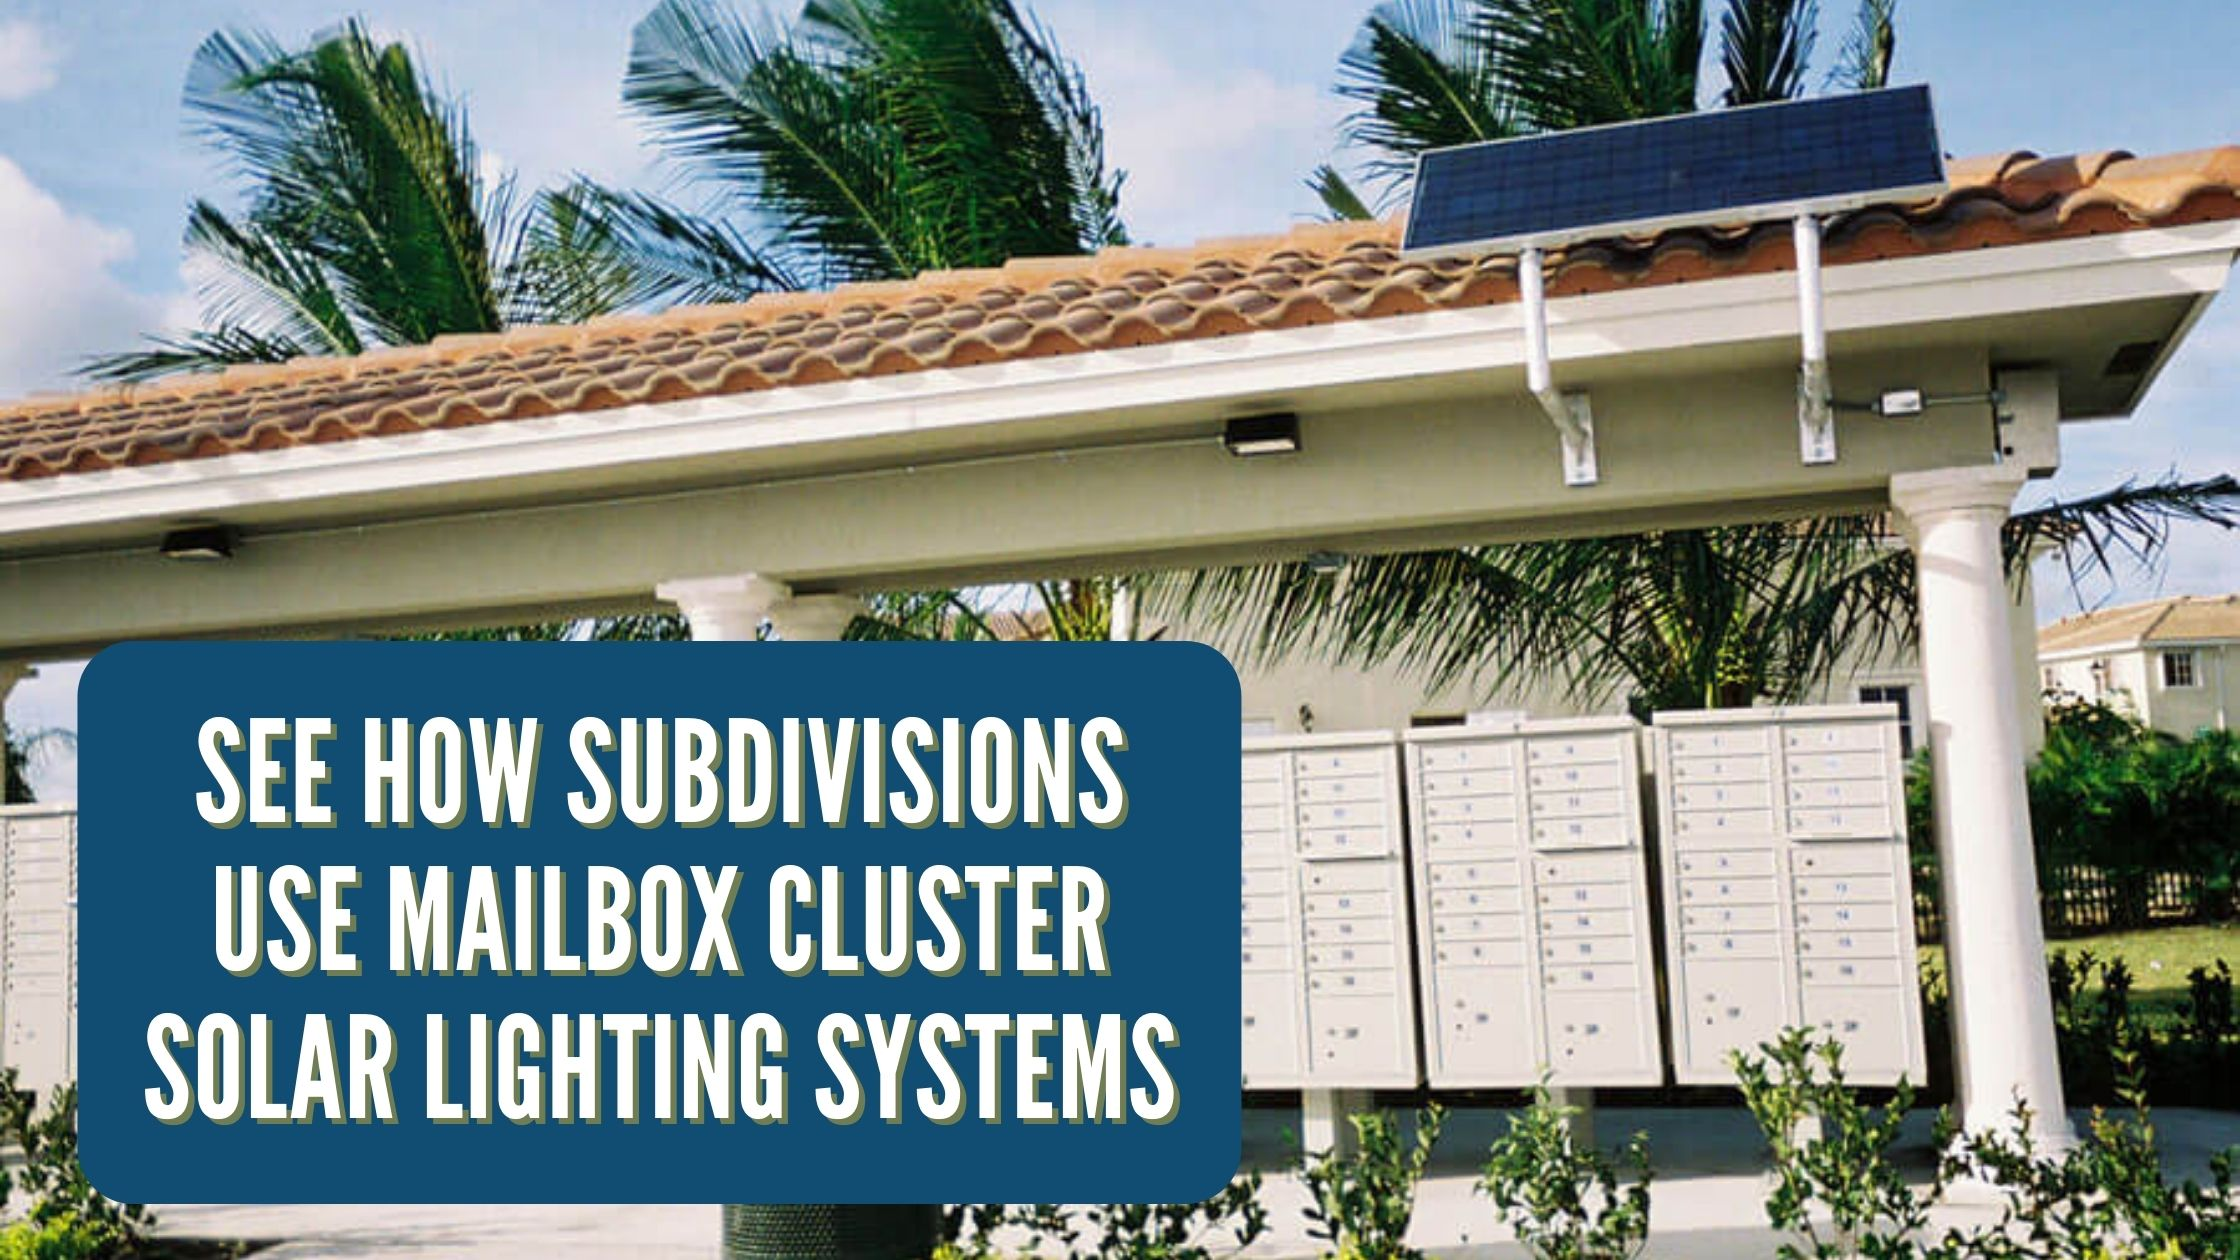 See How Subdivisions Use Mailbox Cluster Solar Lighting Systems